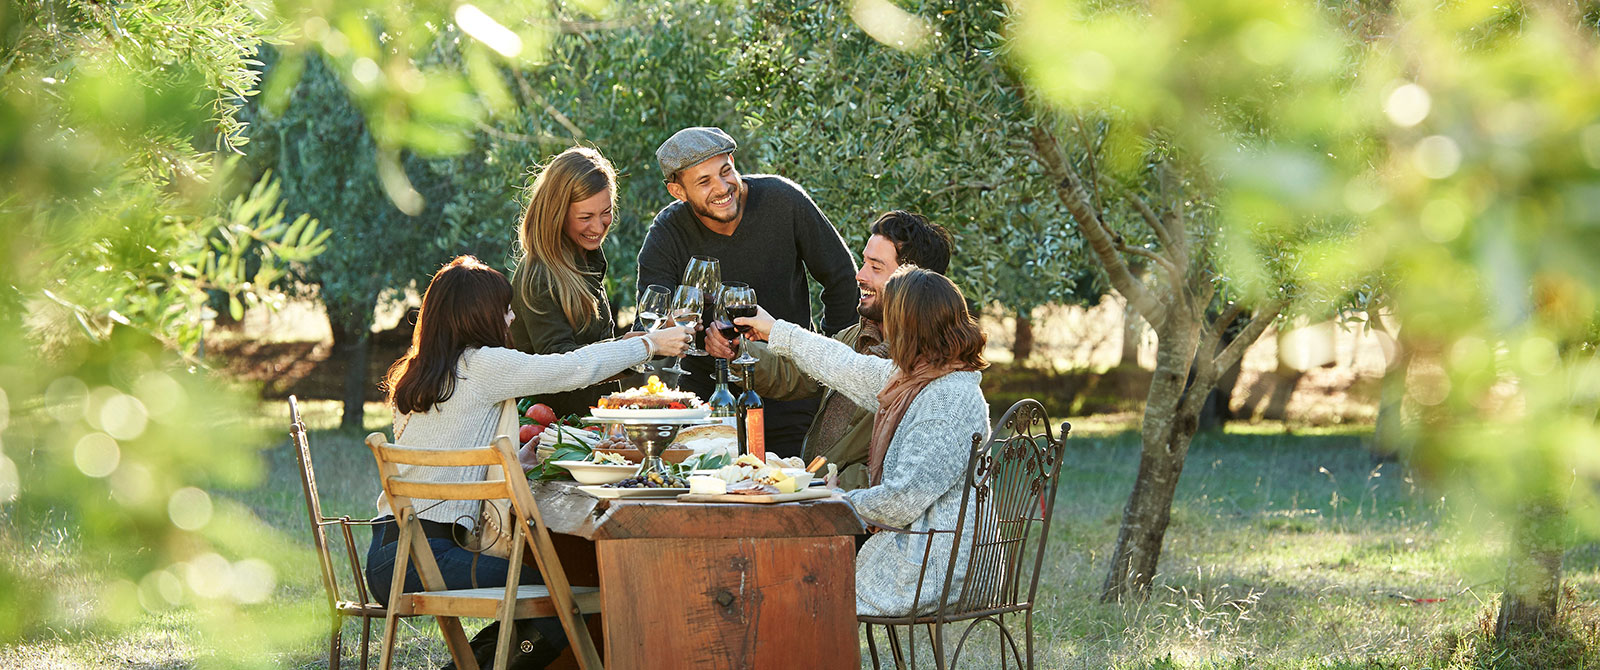 Wining and Dining in Margaret River, Western Australia